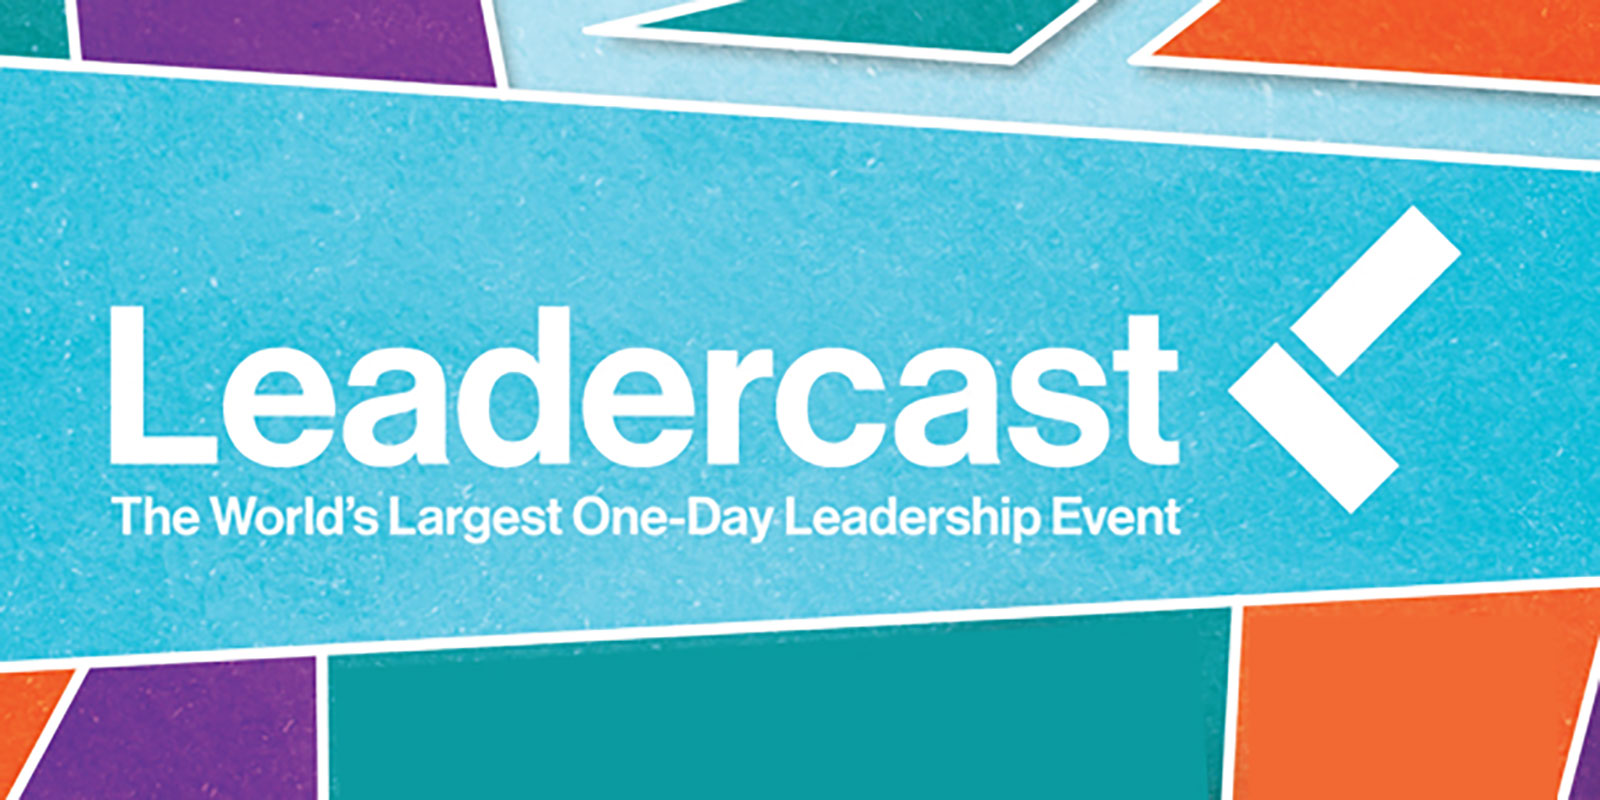 Leadercast at Thomas Nelson